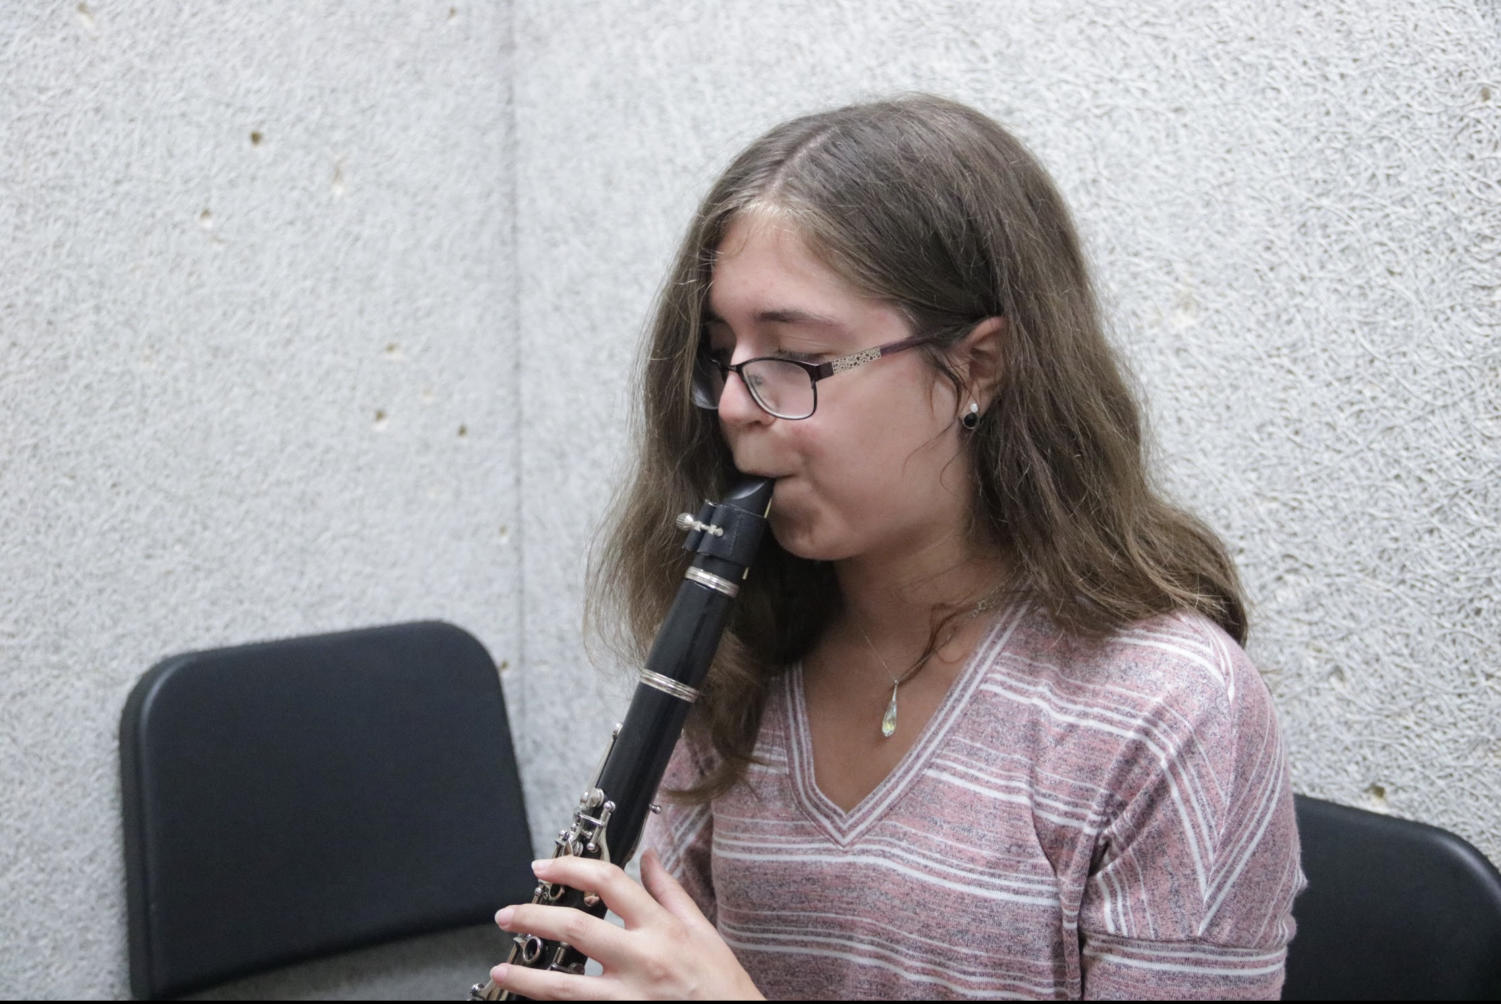 Coppell High School senior Emilie Sangerhausen practices her clarinet on Oct. 15 before school in the CHS band hall. Sangerhausen has played clarinet for seven years. Photo by Tracy Tran